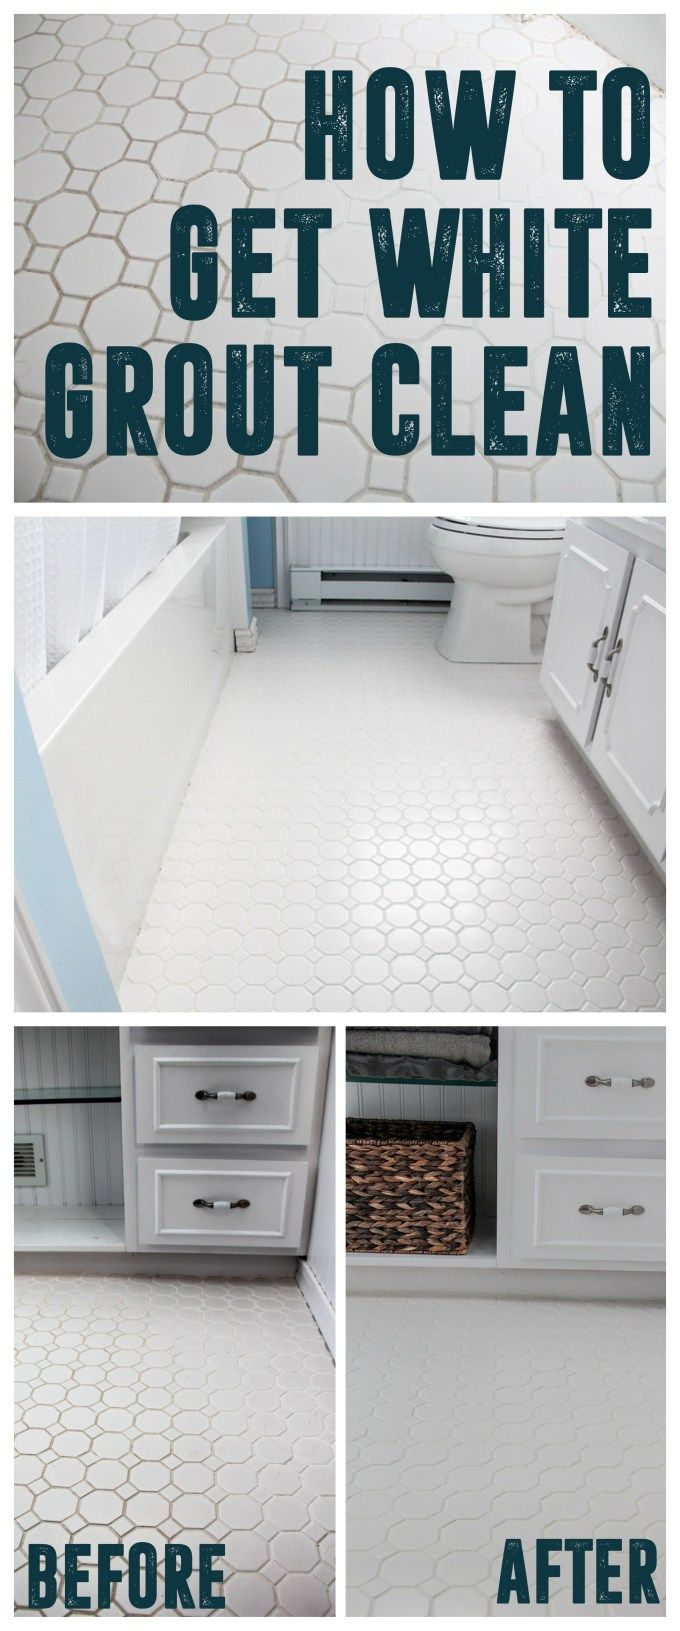 How to get white grout clean grout cleaner grout and clean clean